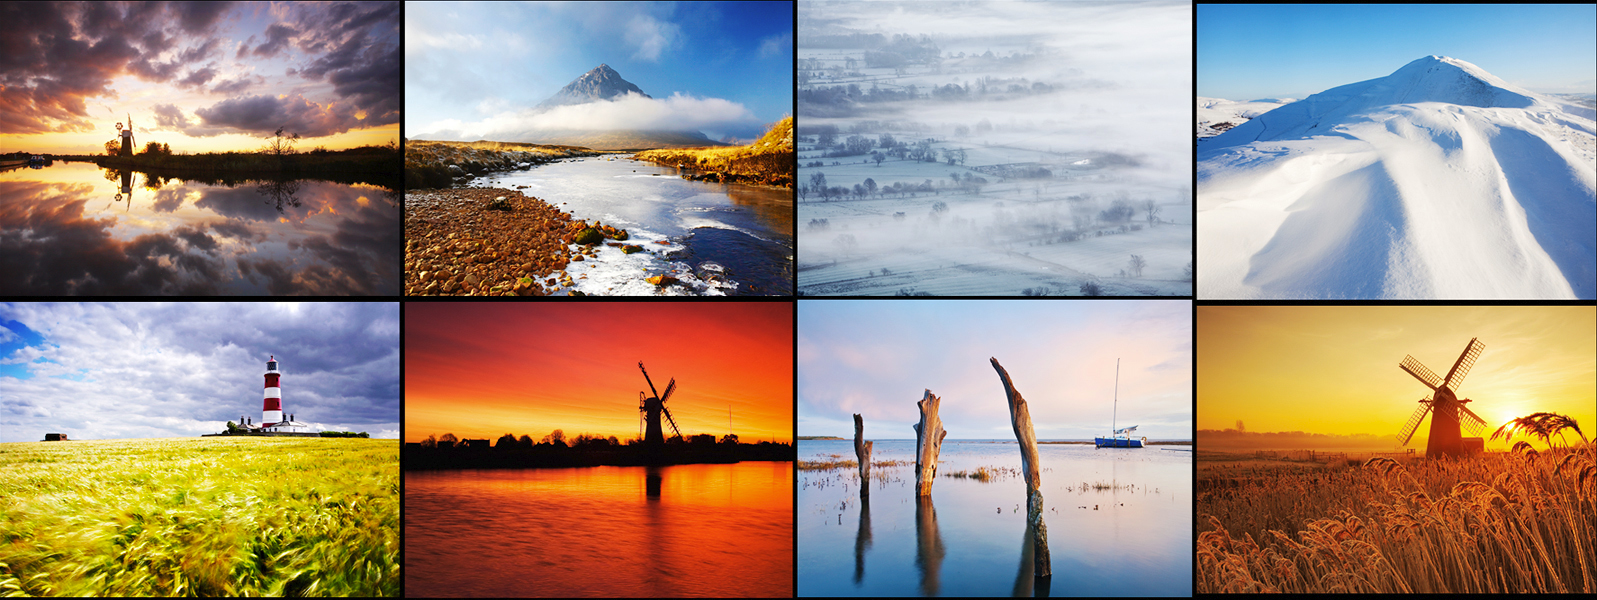 Landscape Photography Workshops